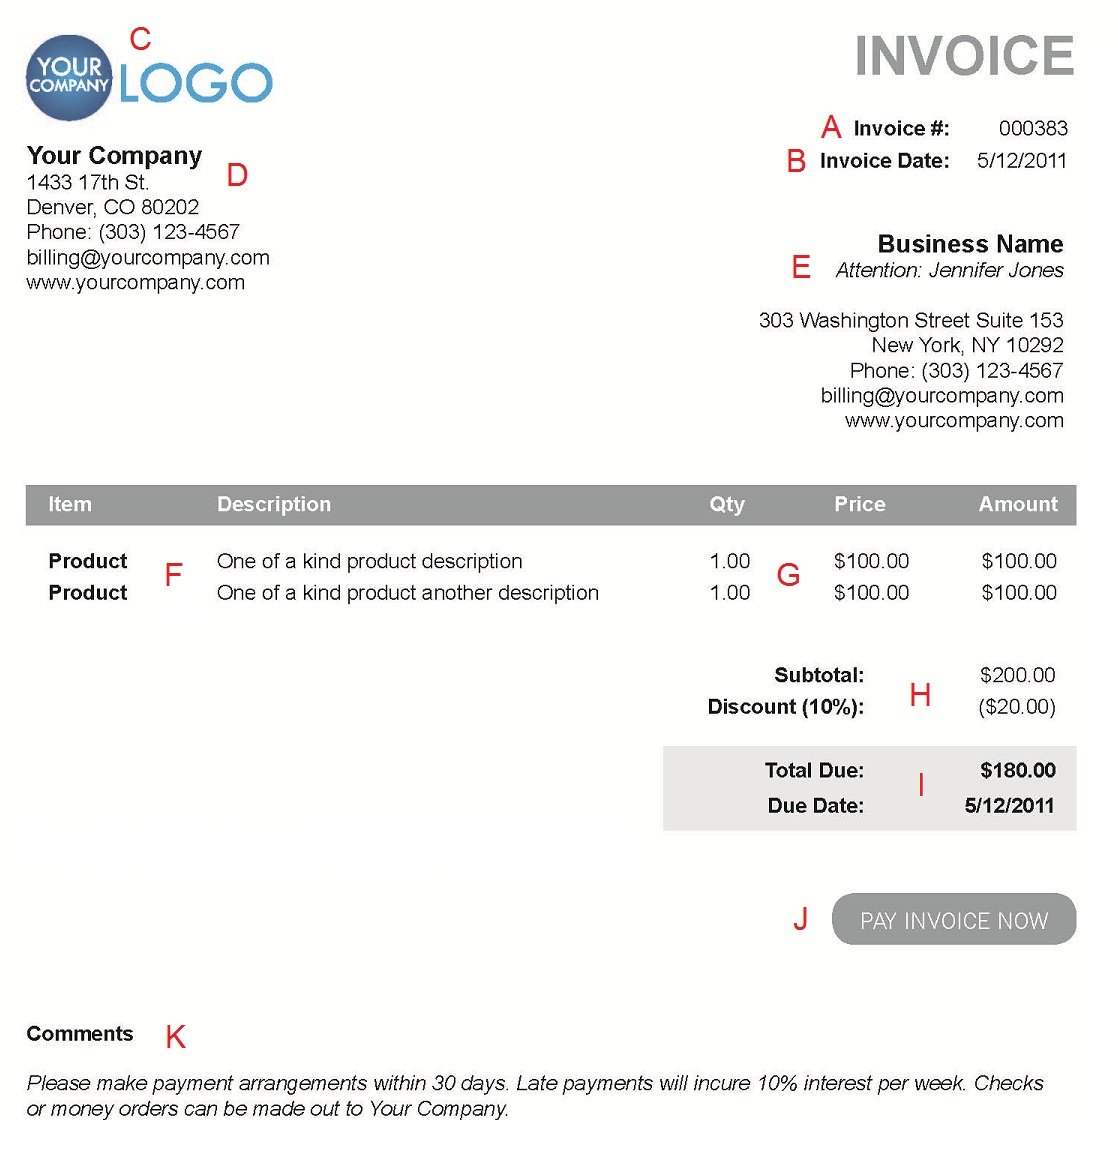 Darkfaderus  Sweet The  Different Sections Of An Electronic Payment Invoice With Excellent A  With Appealing How To Get Invoice Price For New Car Also Real Invoice Price New Cars In Addition Invoicing Tools And Paying An Invoice As Well As Car Dealership Invoice Price Additionally Blank Invoices Free From Paysimplecom With Darkfaderus  Excellent The  Different Sections Of An Electronic Payment Invoice With Appealing A  And Sweet How To Get Invoice Price For New Car Also Real Invoice Price New Cars In Addition Invoicing Tools From Paysimplecom